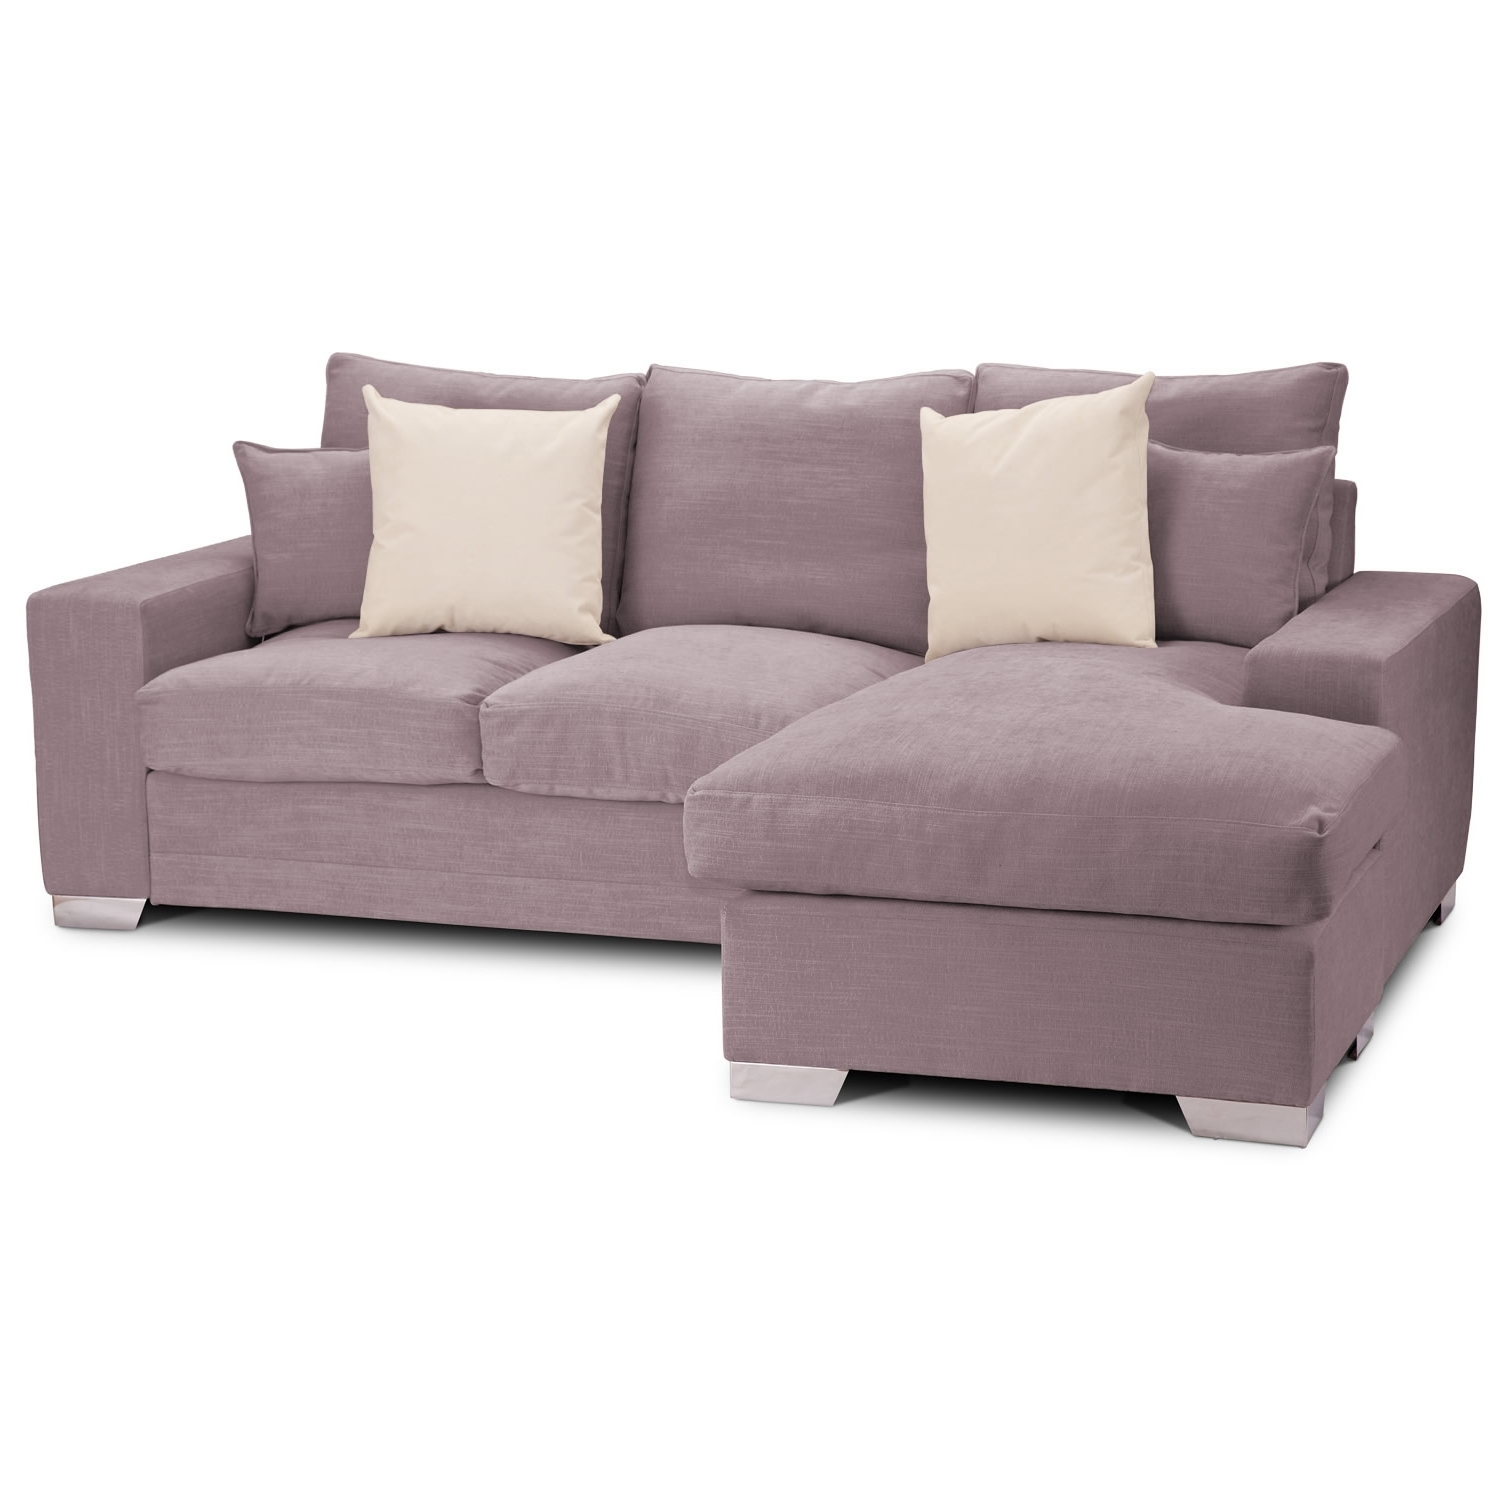 Sofa ~ Astonishing Velvet L Shaped Sofa Soft Gray Velvet Sofa With Regarding Well Known L Shaped Couches With Chaise (View 5 of 15)